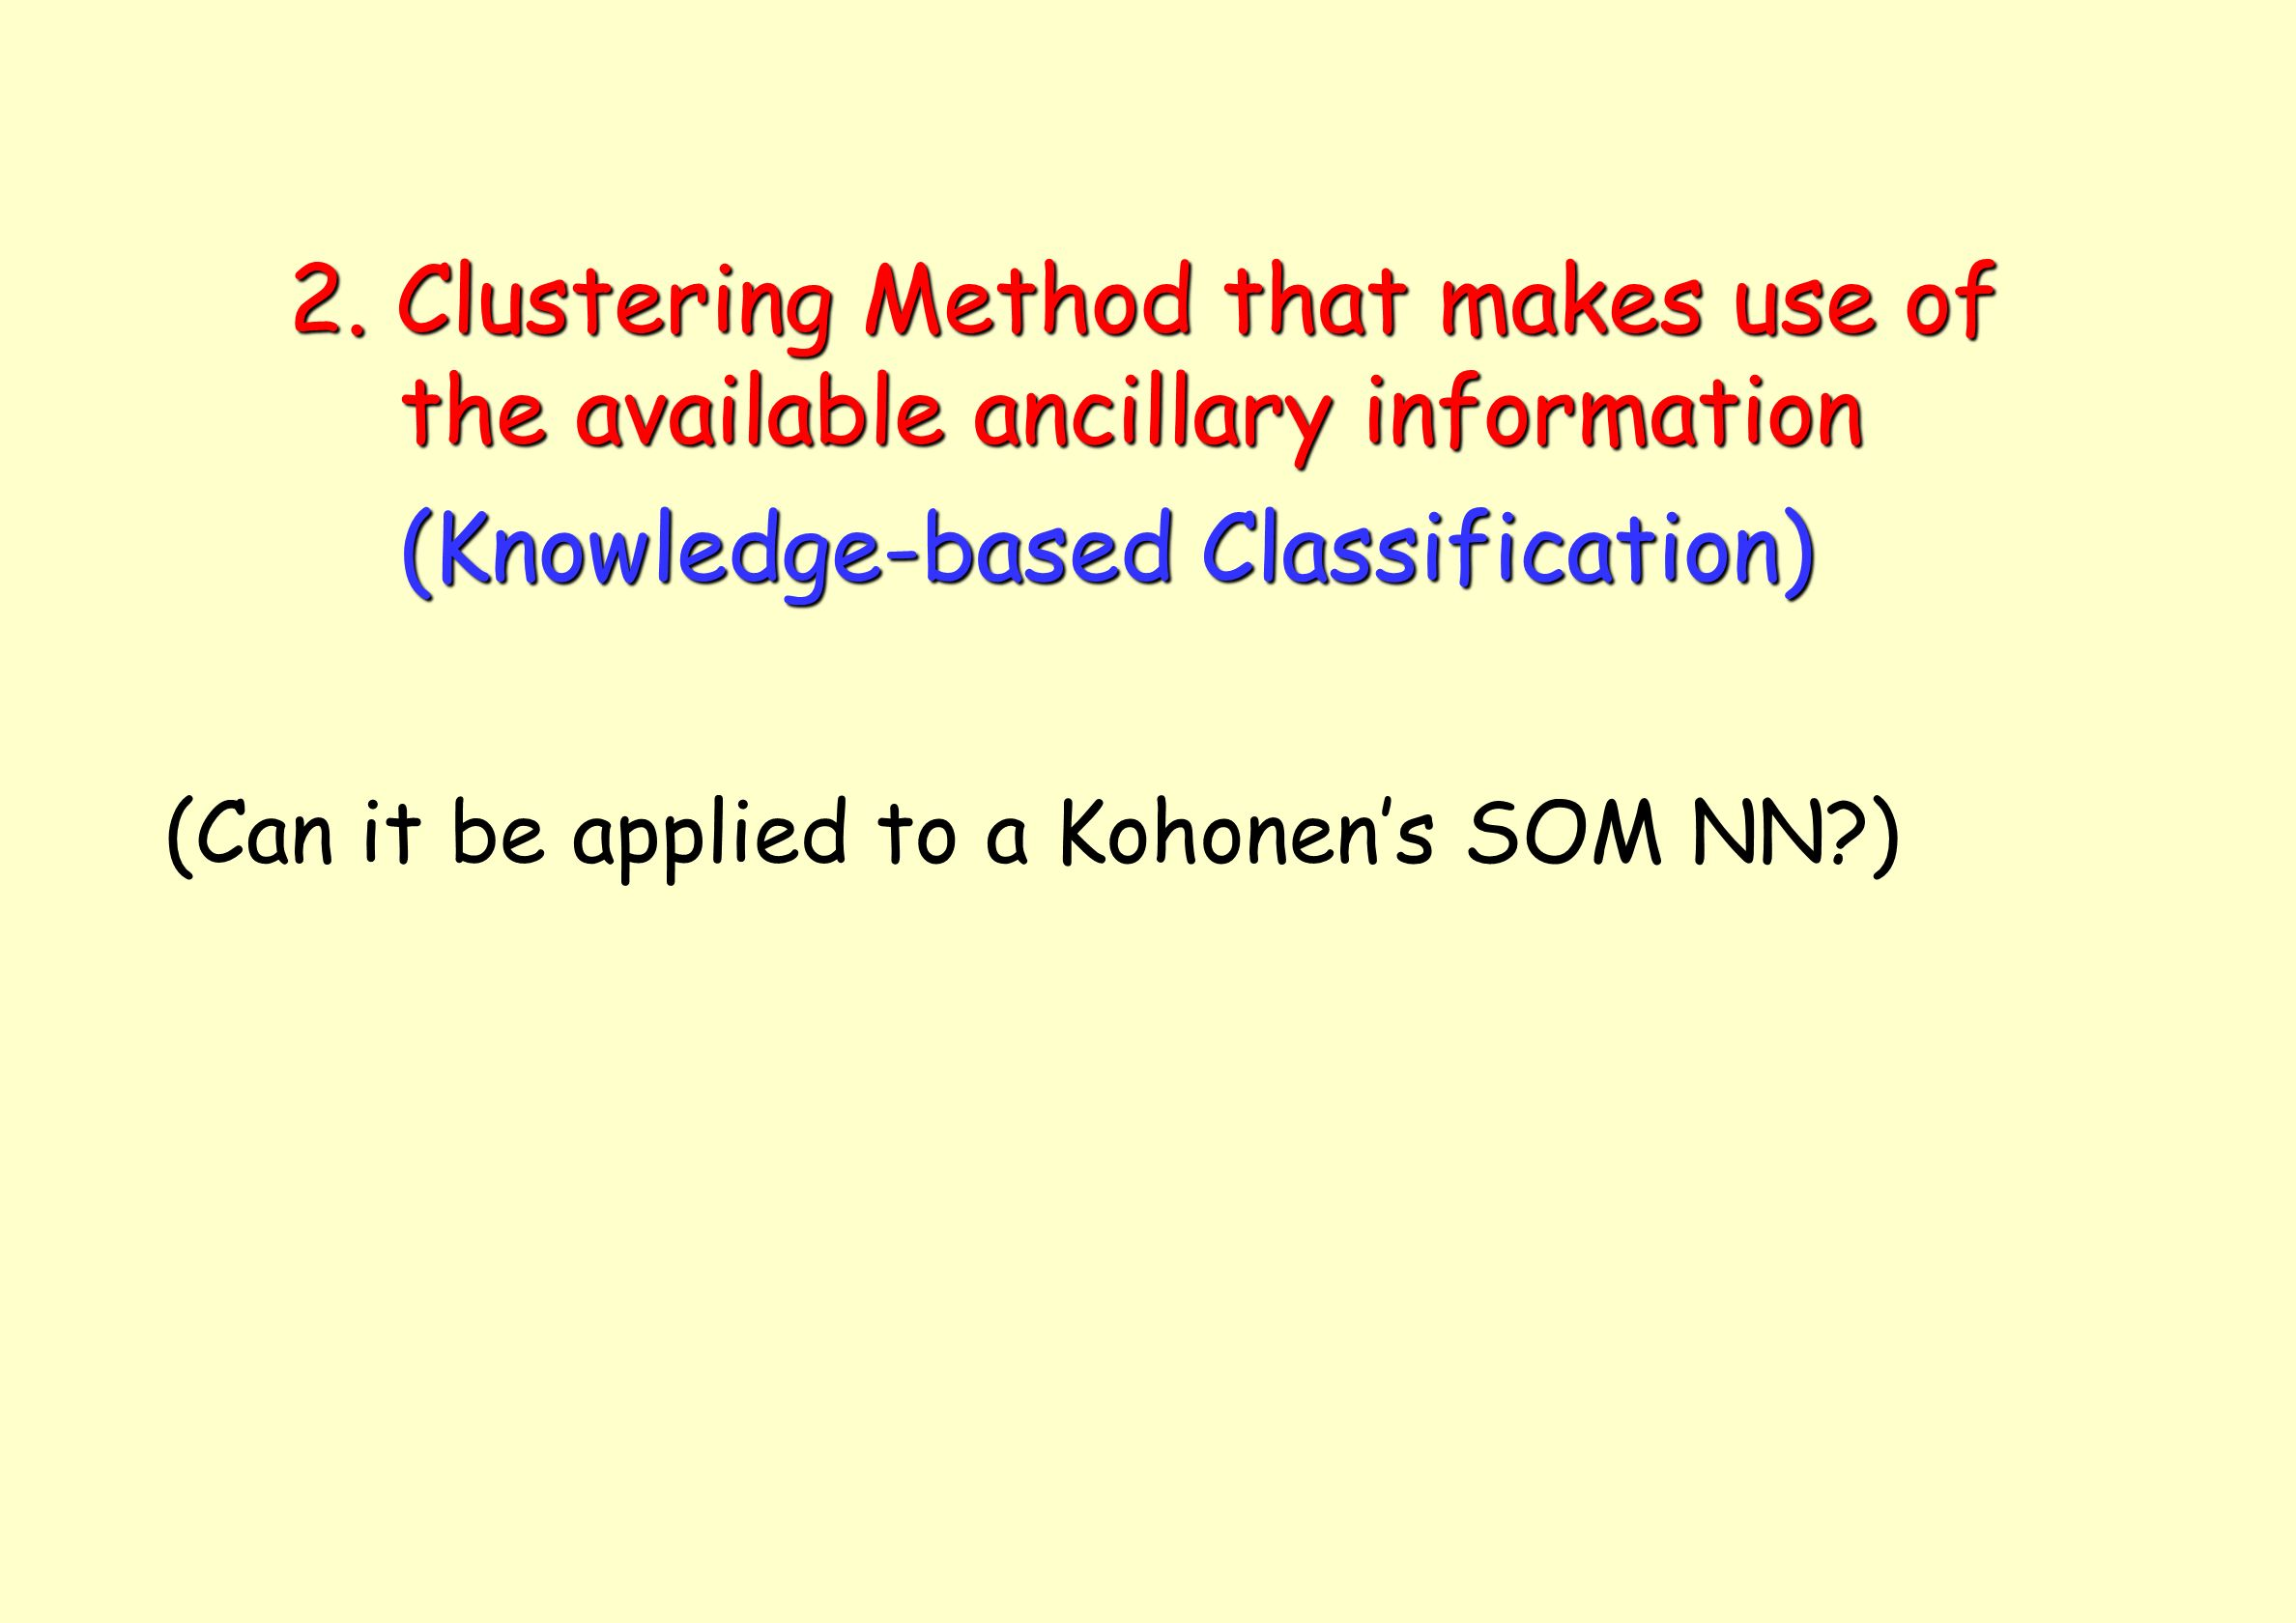 2. Clustering Method that makes use of